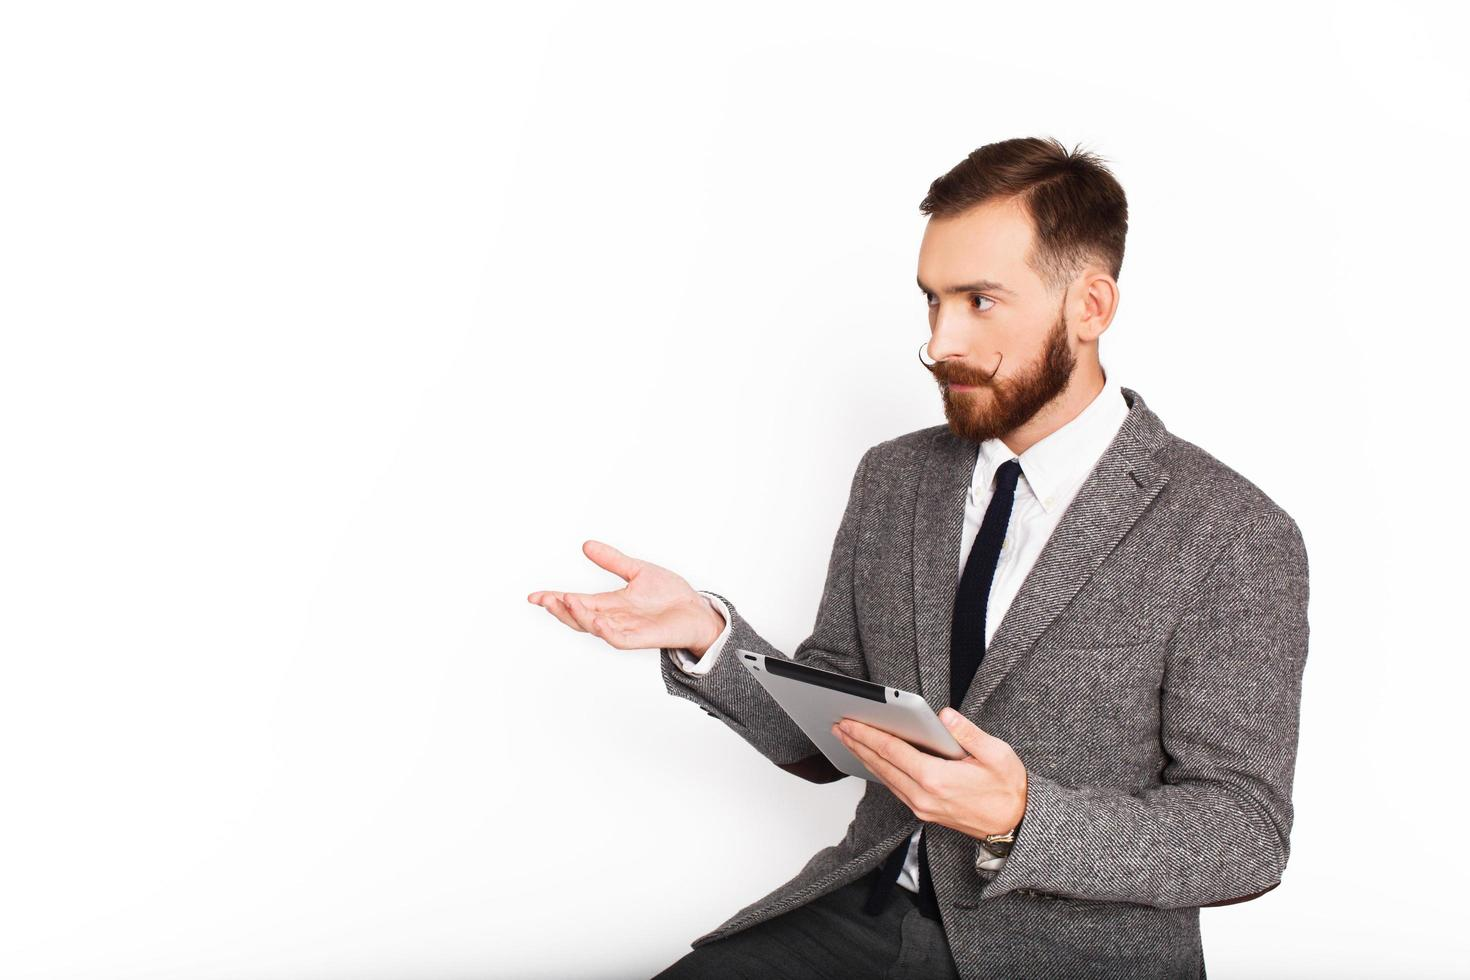 Serious man in gray suit gesturing while holding a tablet photo